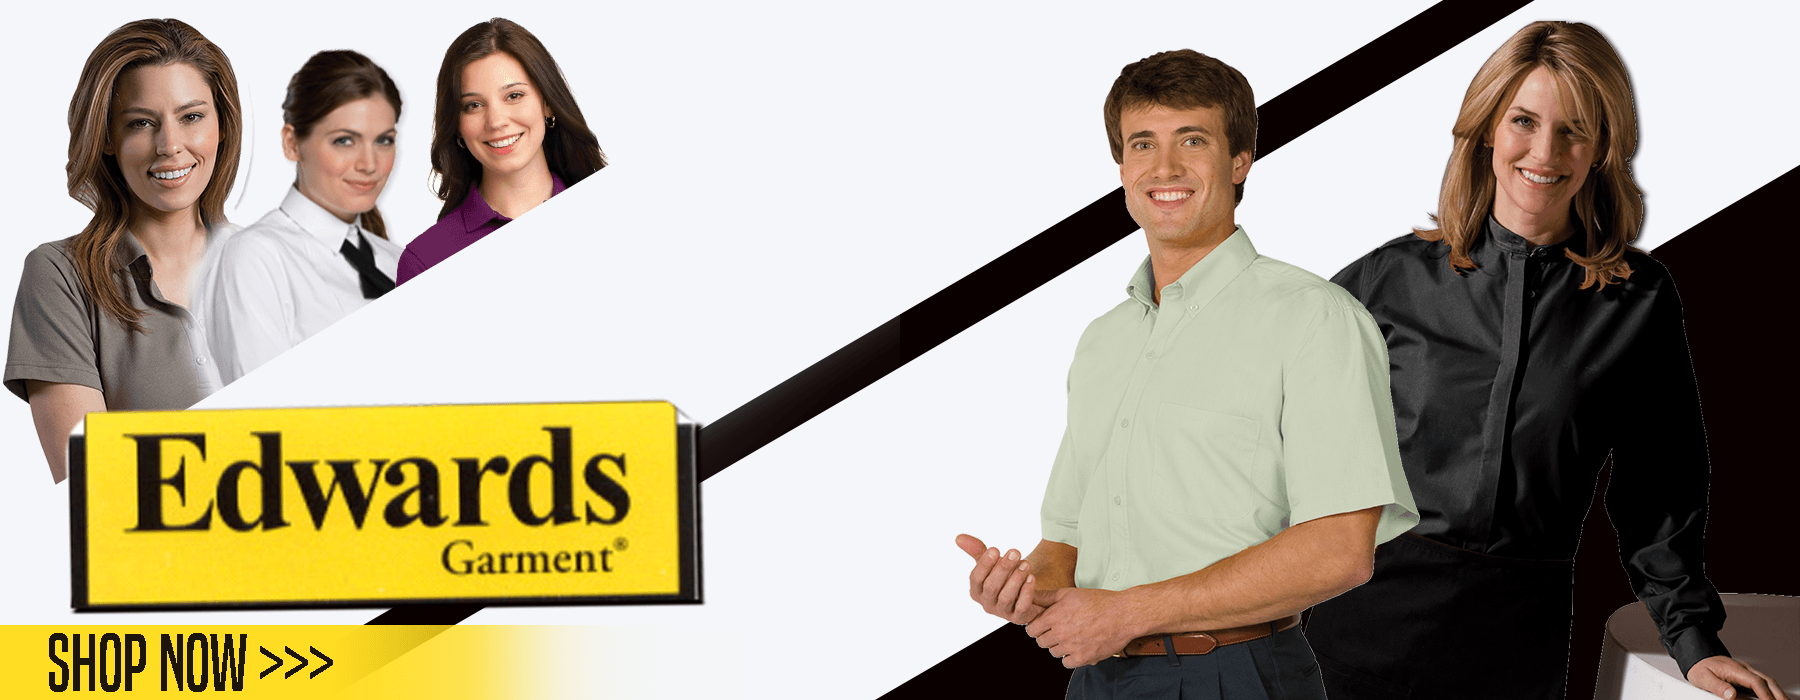 banner_fusion_edwards.png